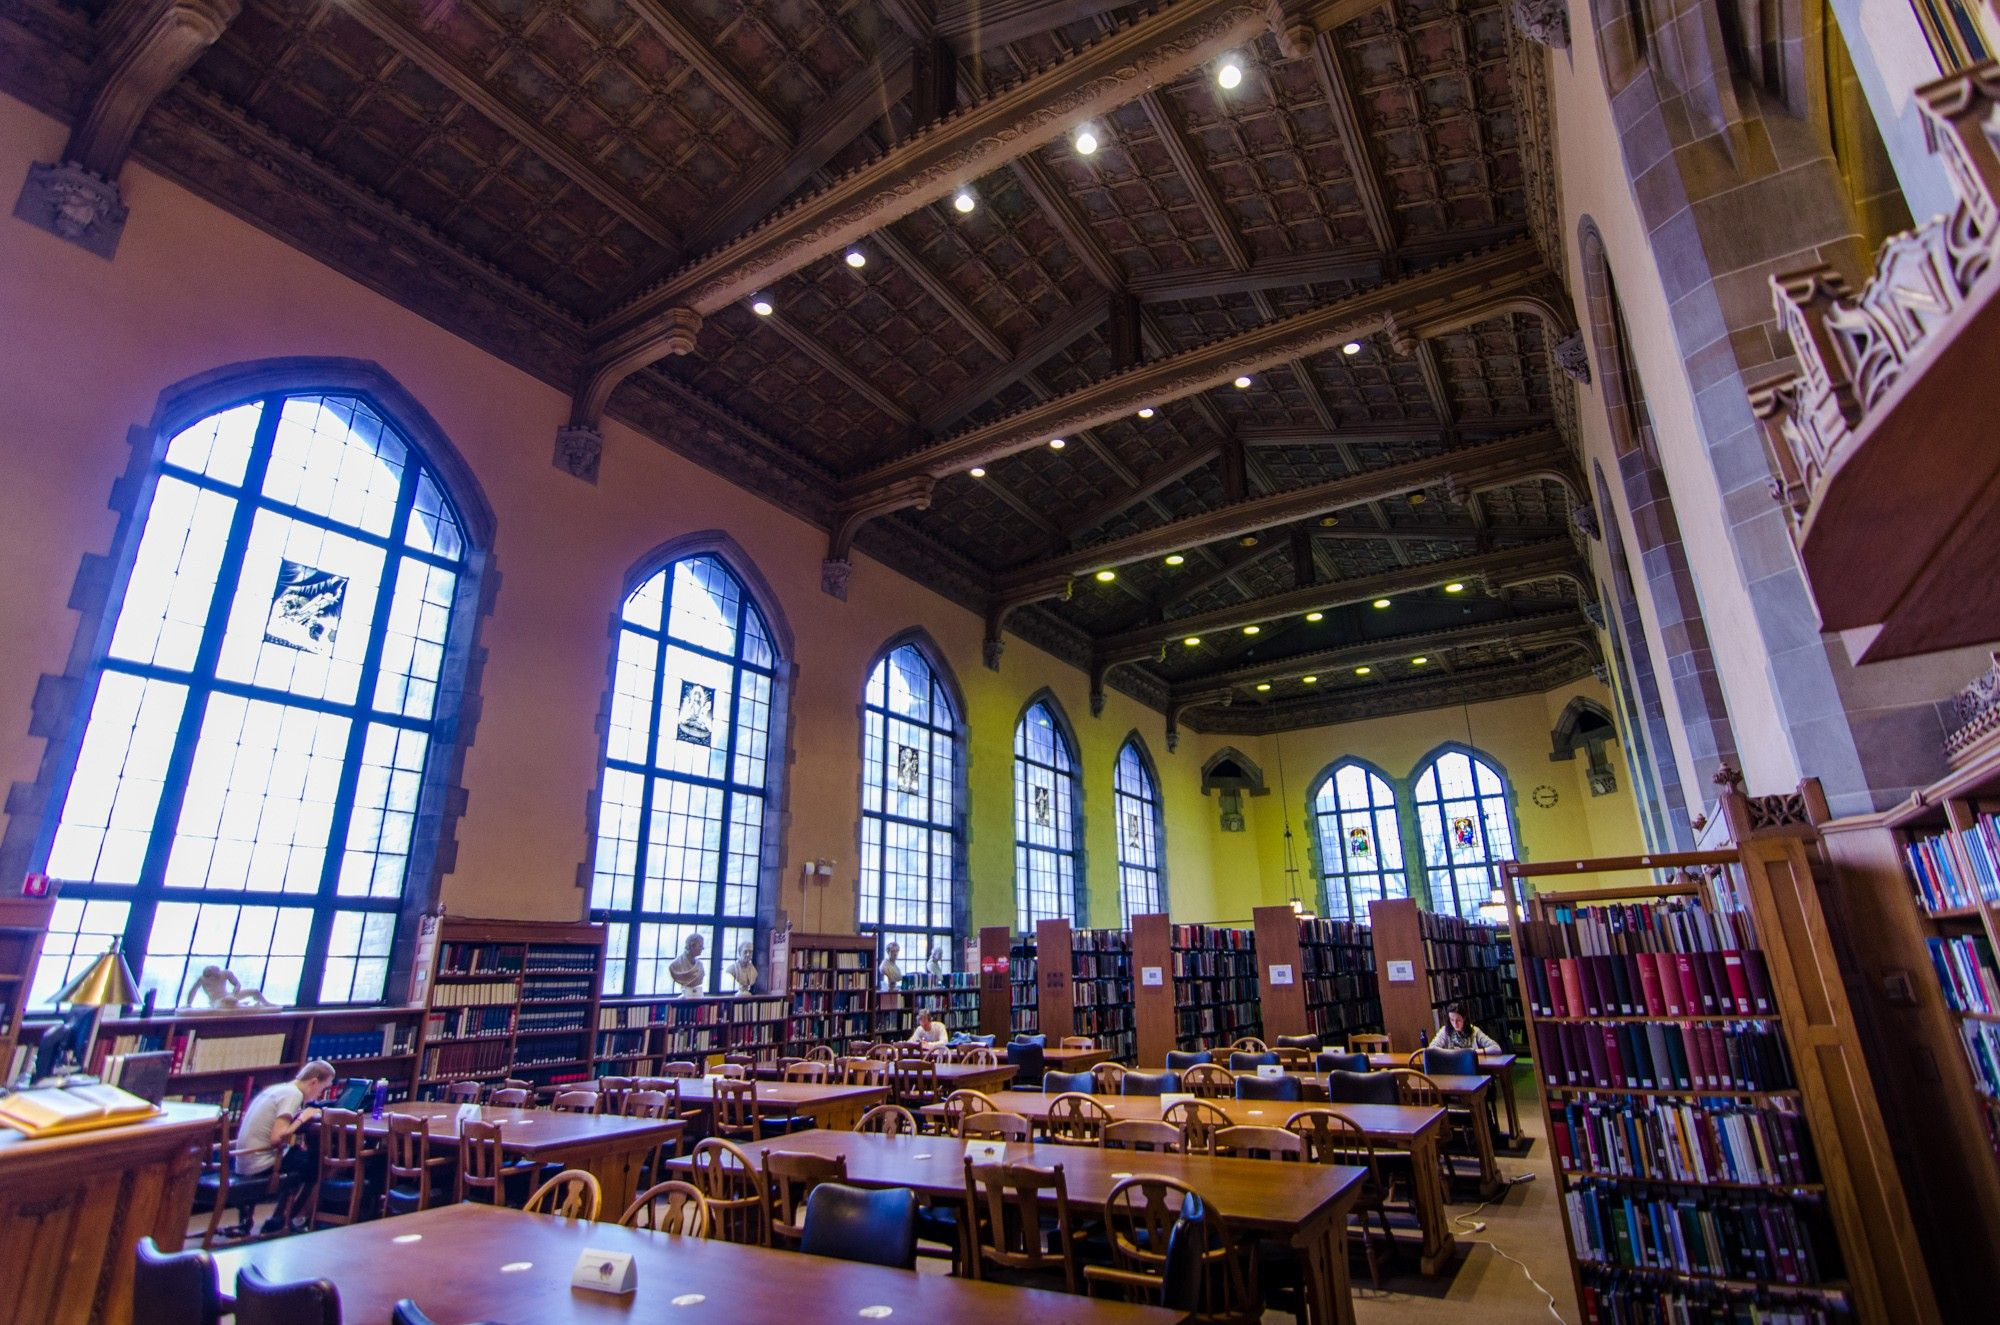 Experience the inspiring Collegiate-Gothic reading room of this dramatic library. #OHC2016